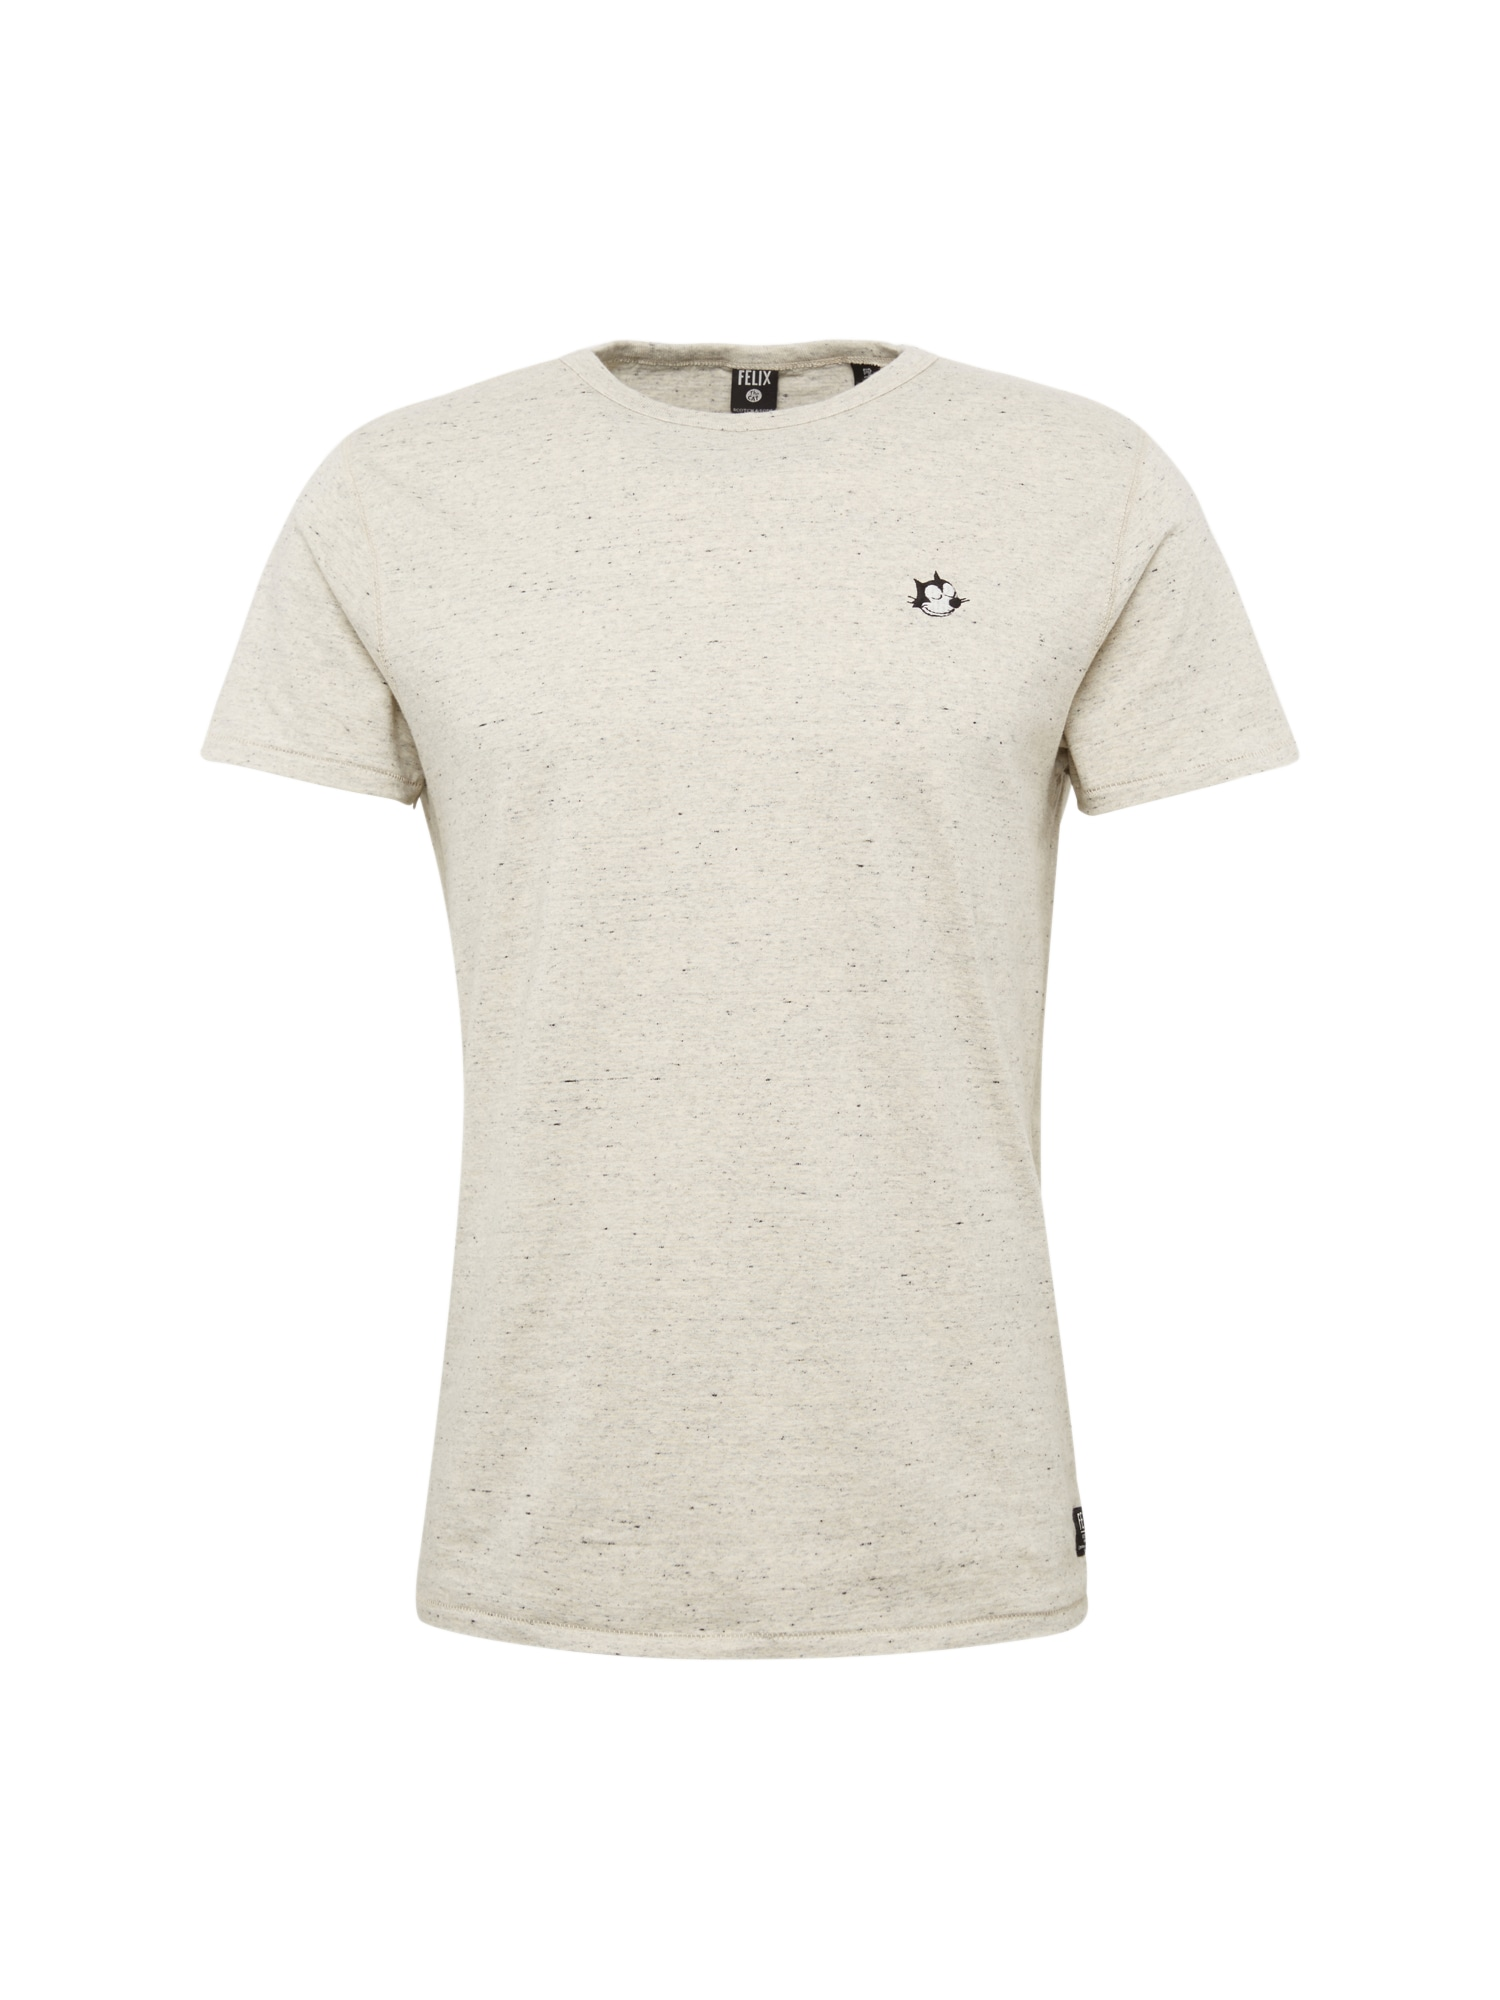 SCOTCH  and  SODA Heren Shirt Felix Ams Blauw colab tee with chest sign off ecru